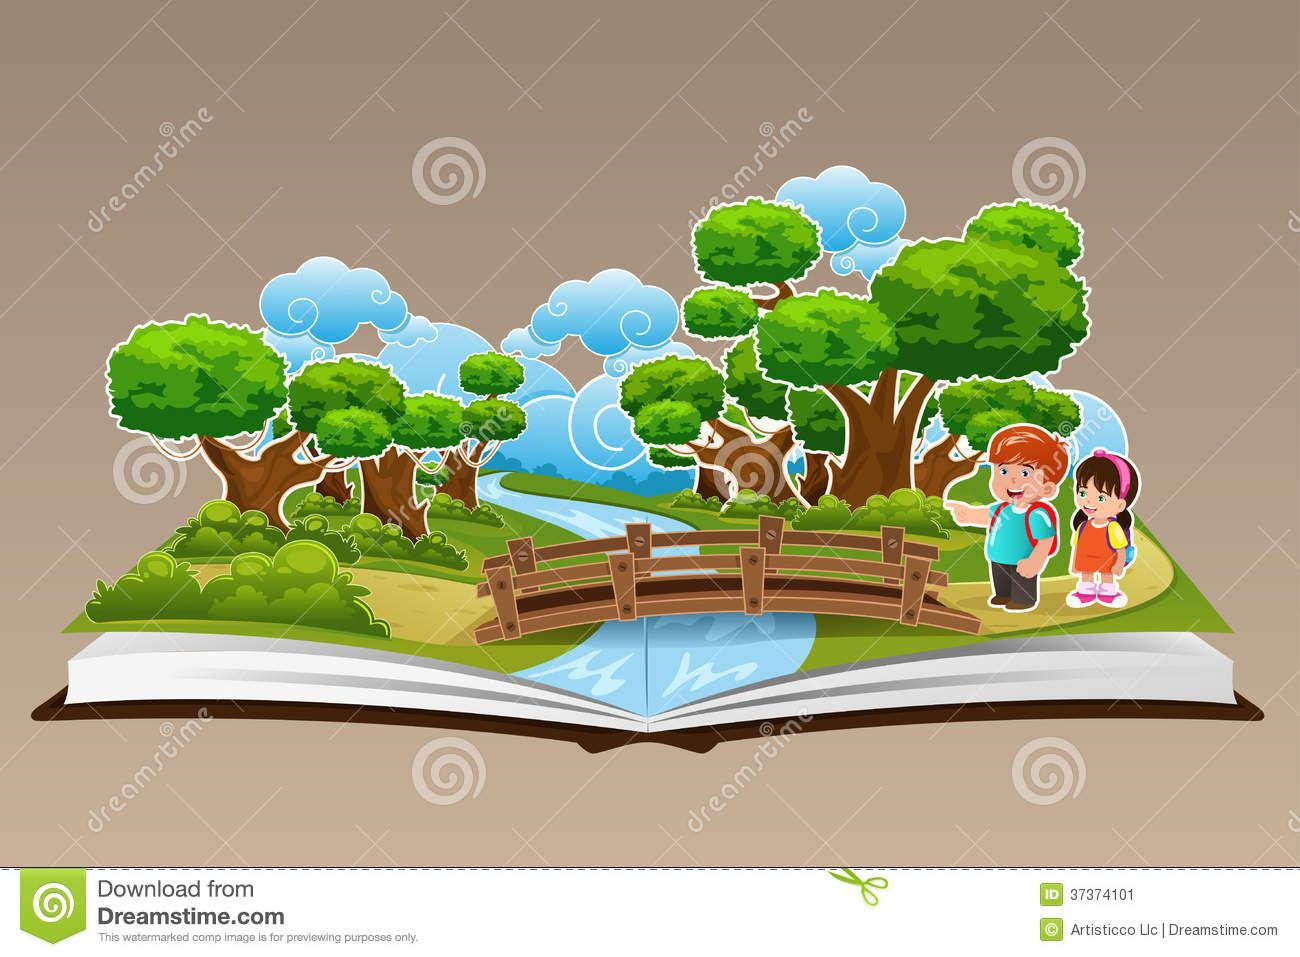 Pop Up Book Forest Theme Vector Illustration 37374101 Jpg 1300 957 Diy Pop Up Book Pop Up Book Forest Theme